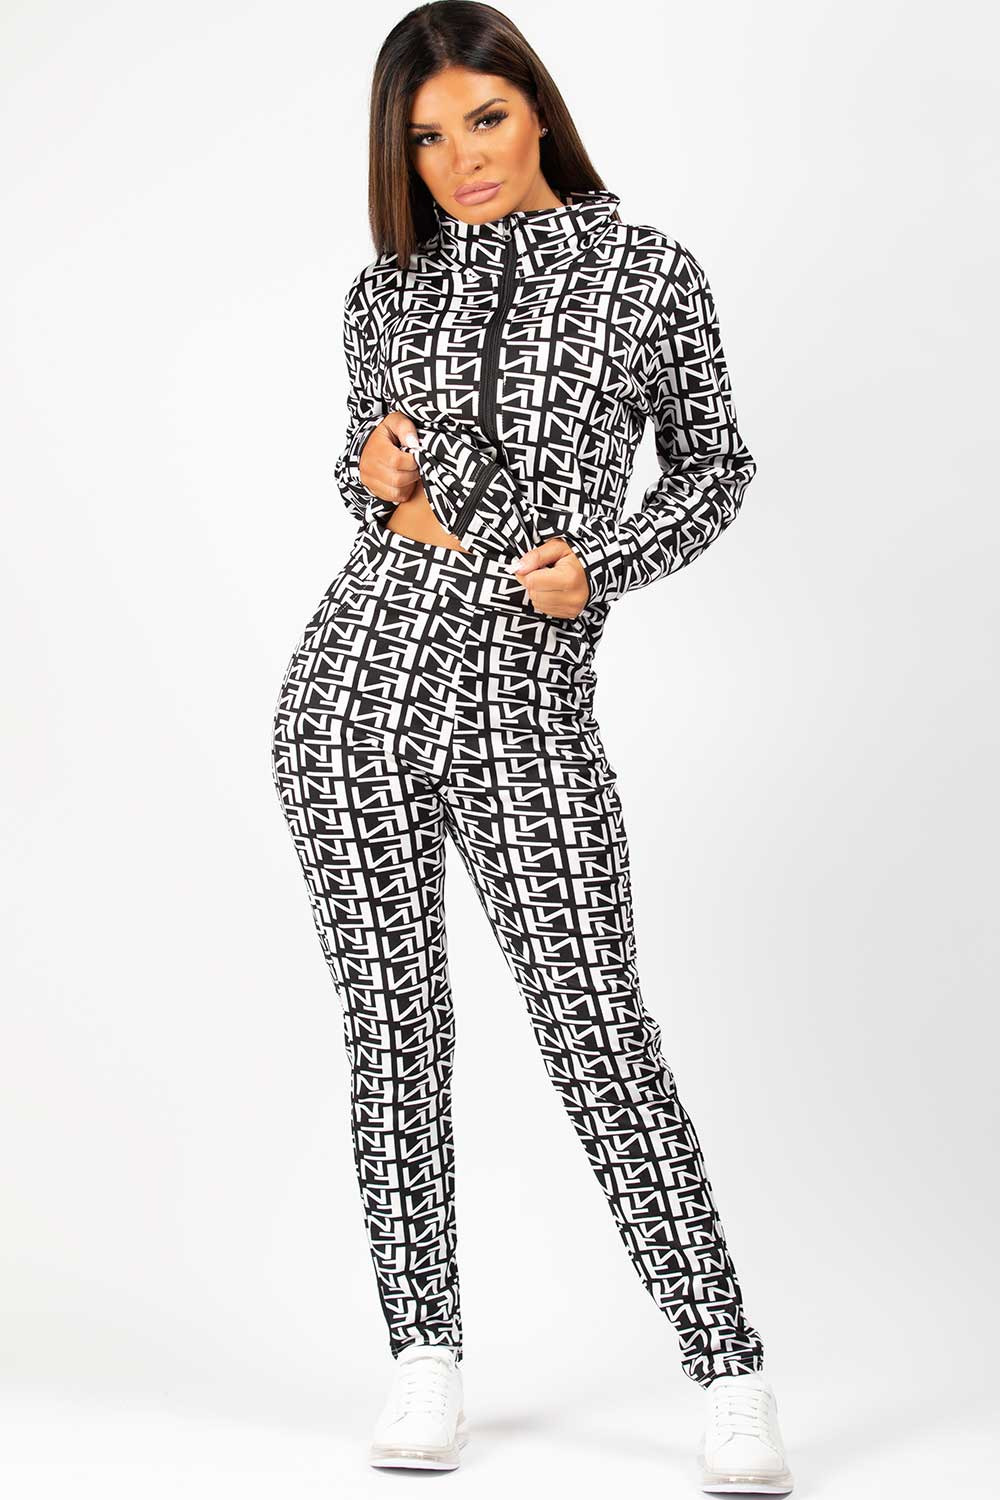 black and white fendi inspired loungewear co ord set